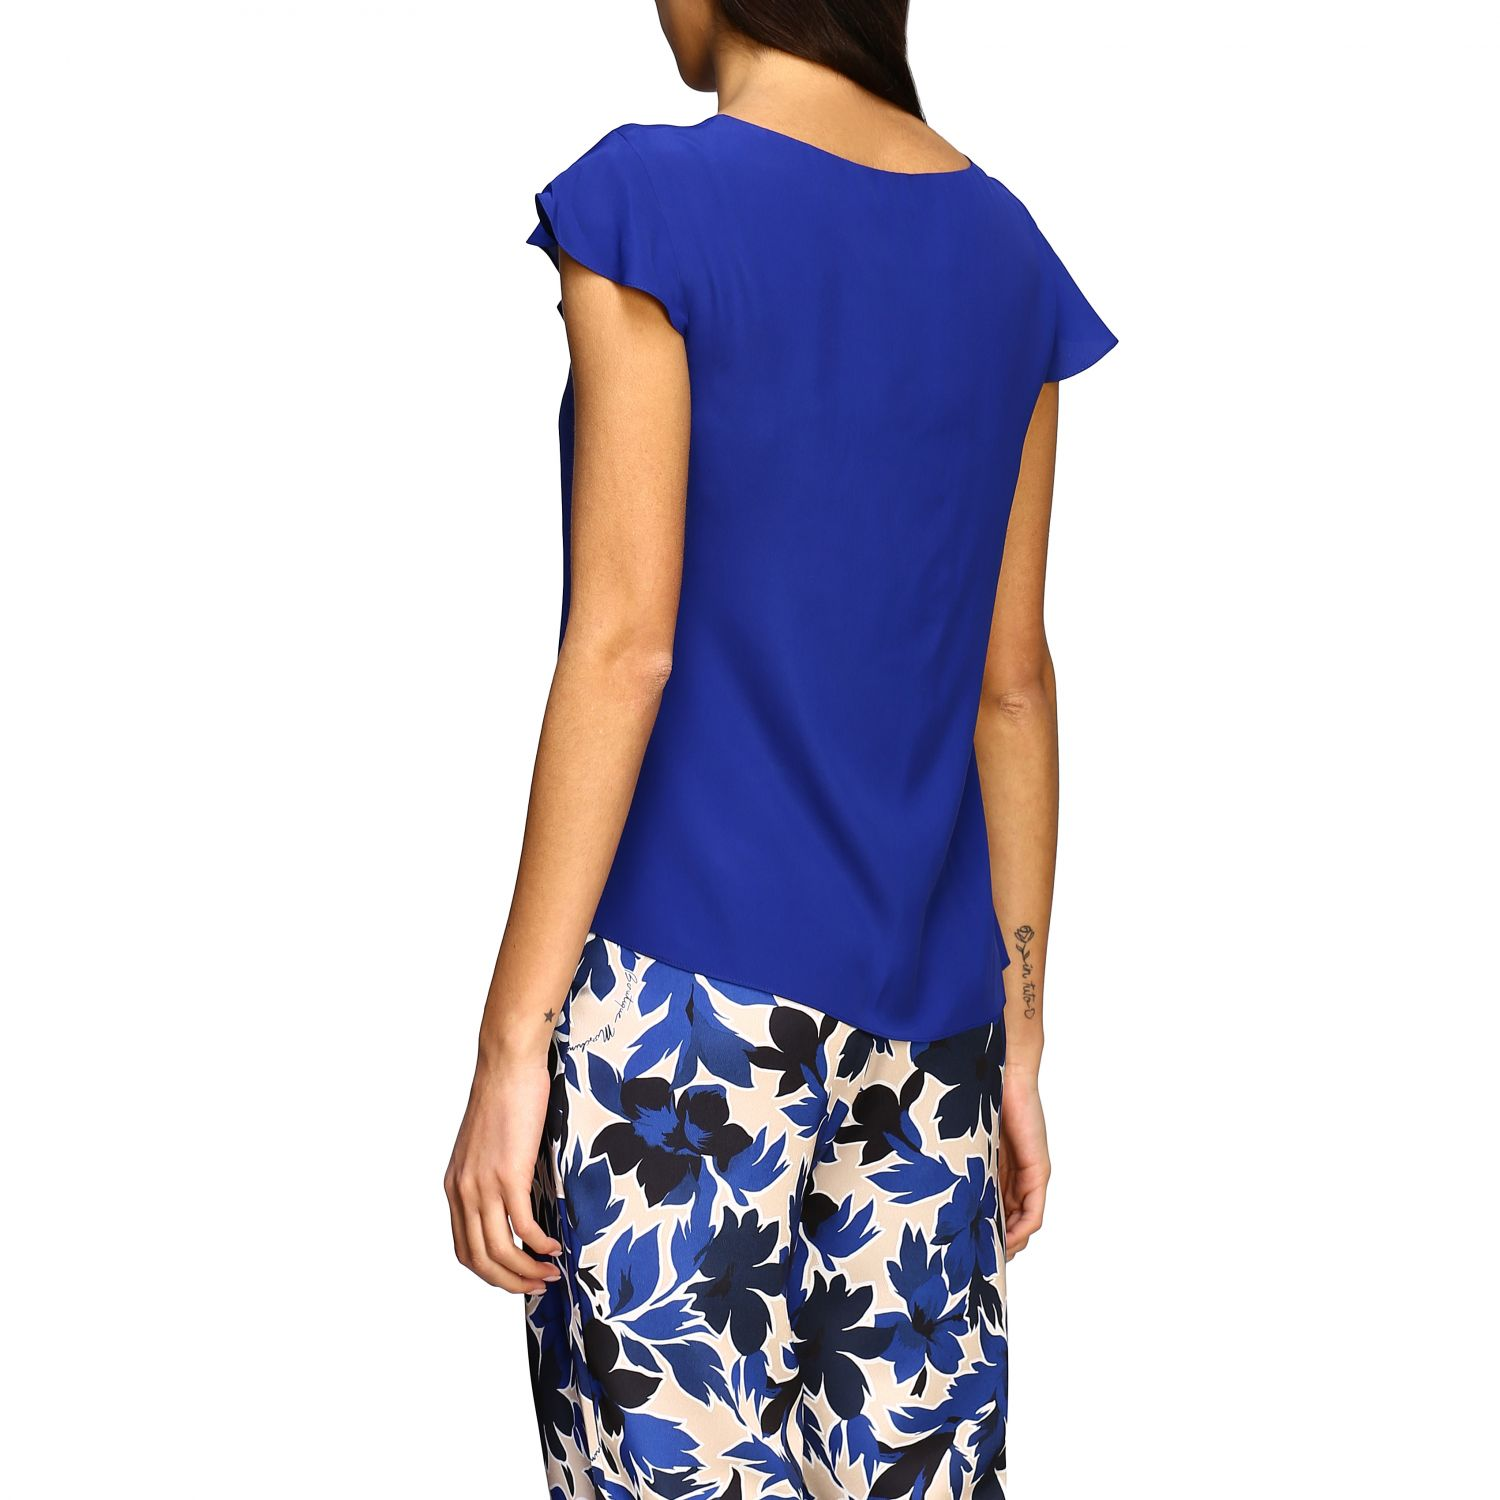 Top Boutique Moschino: Top women Boutique Moschino blue 3